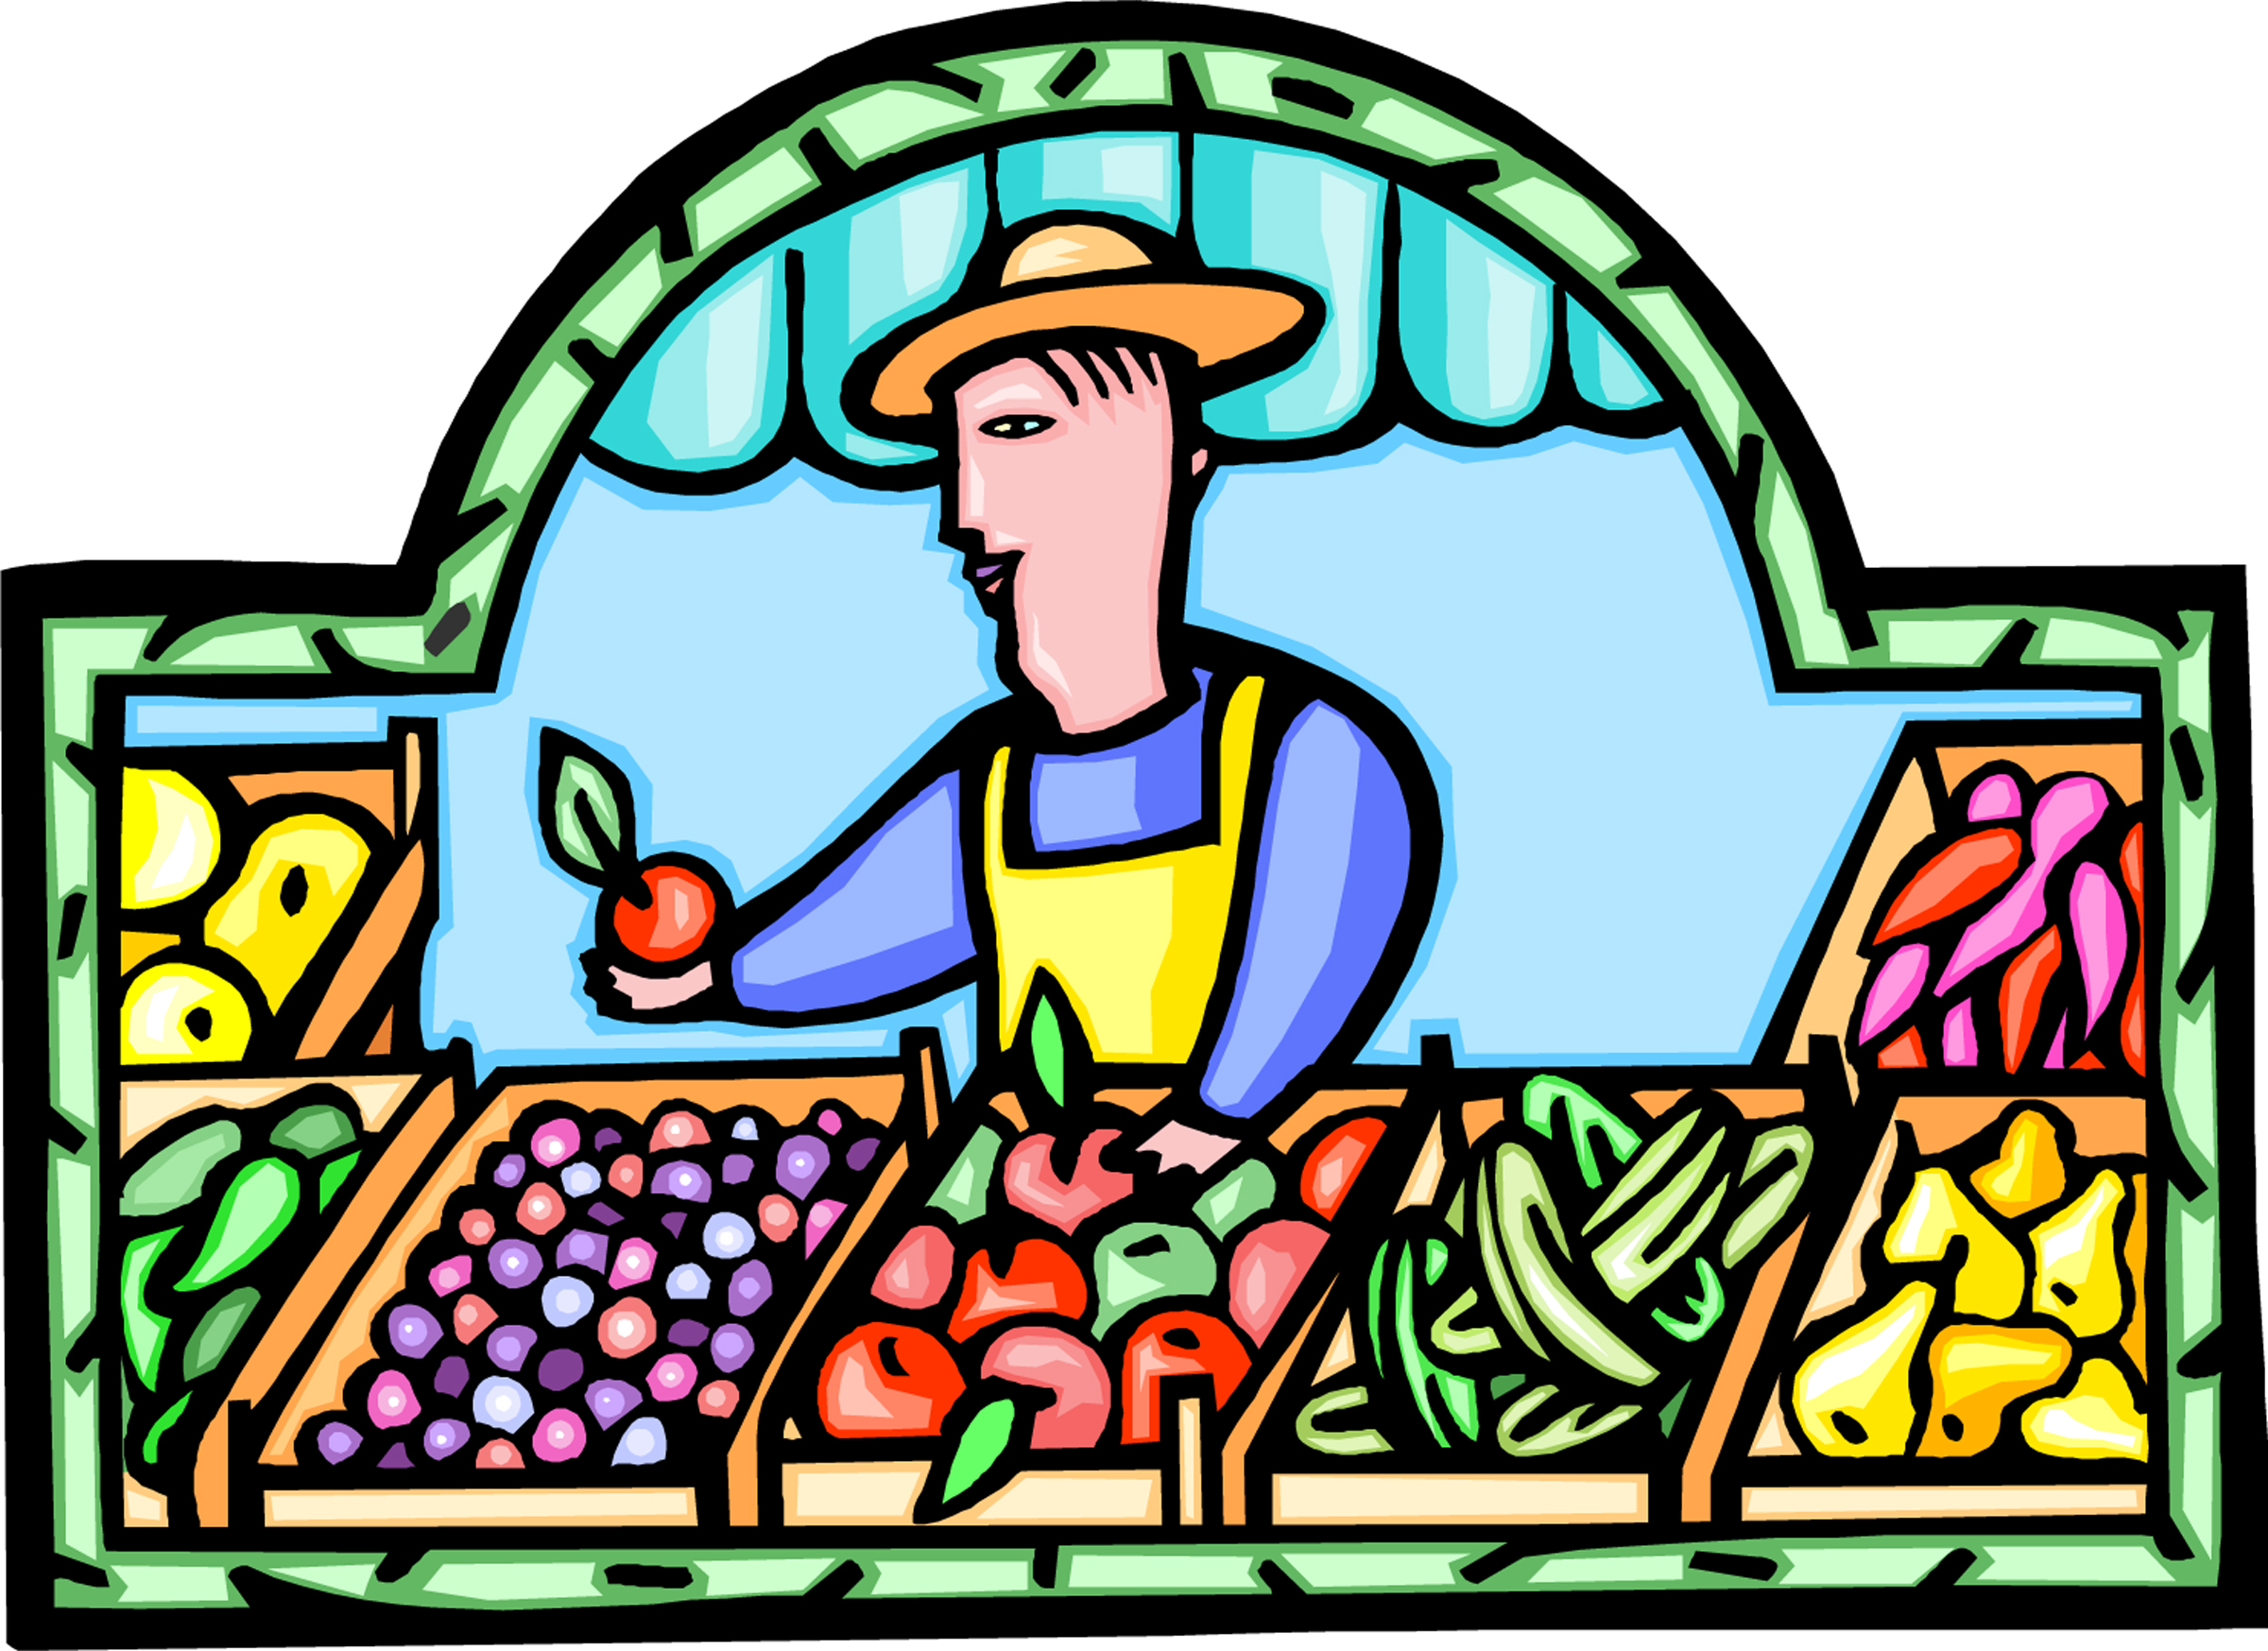 Market clipart street market. Grocer cliparts free download